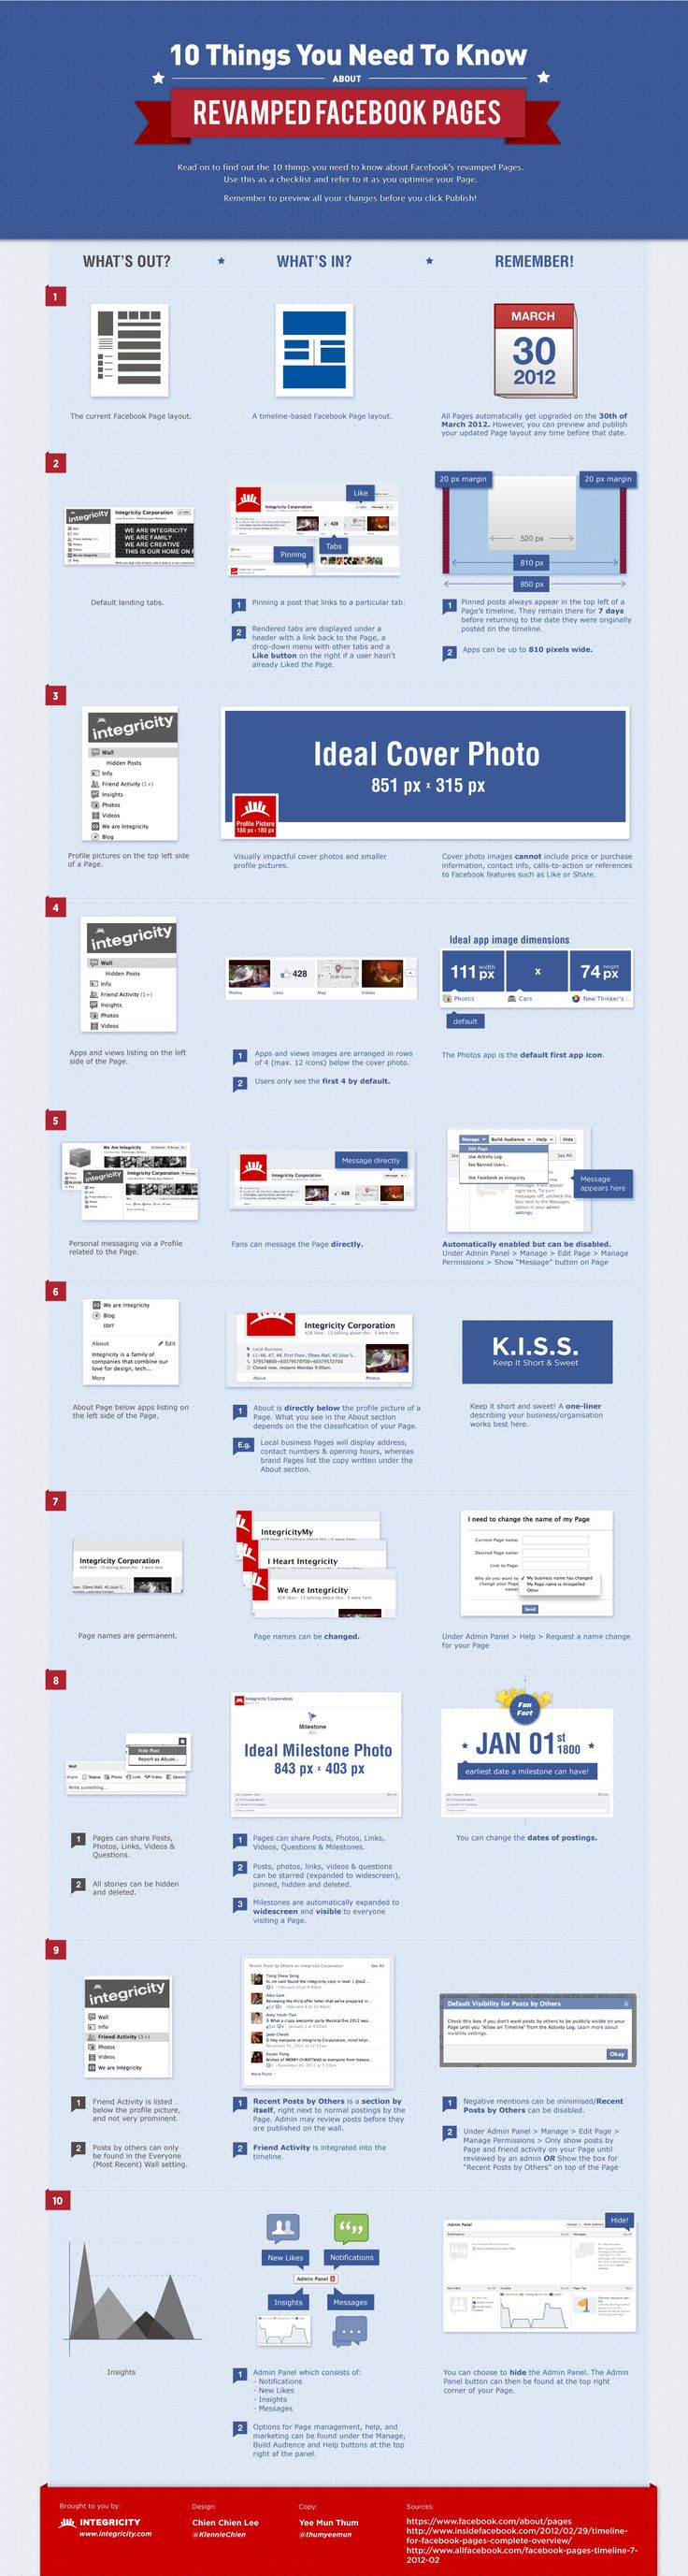 The updated Facebook page - 10 things you need to know